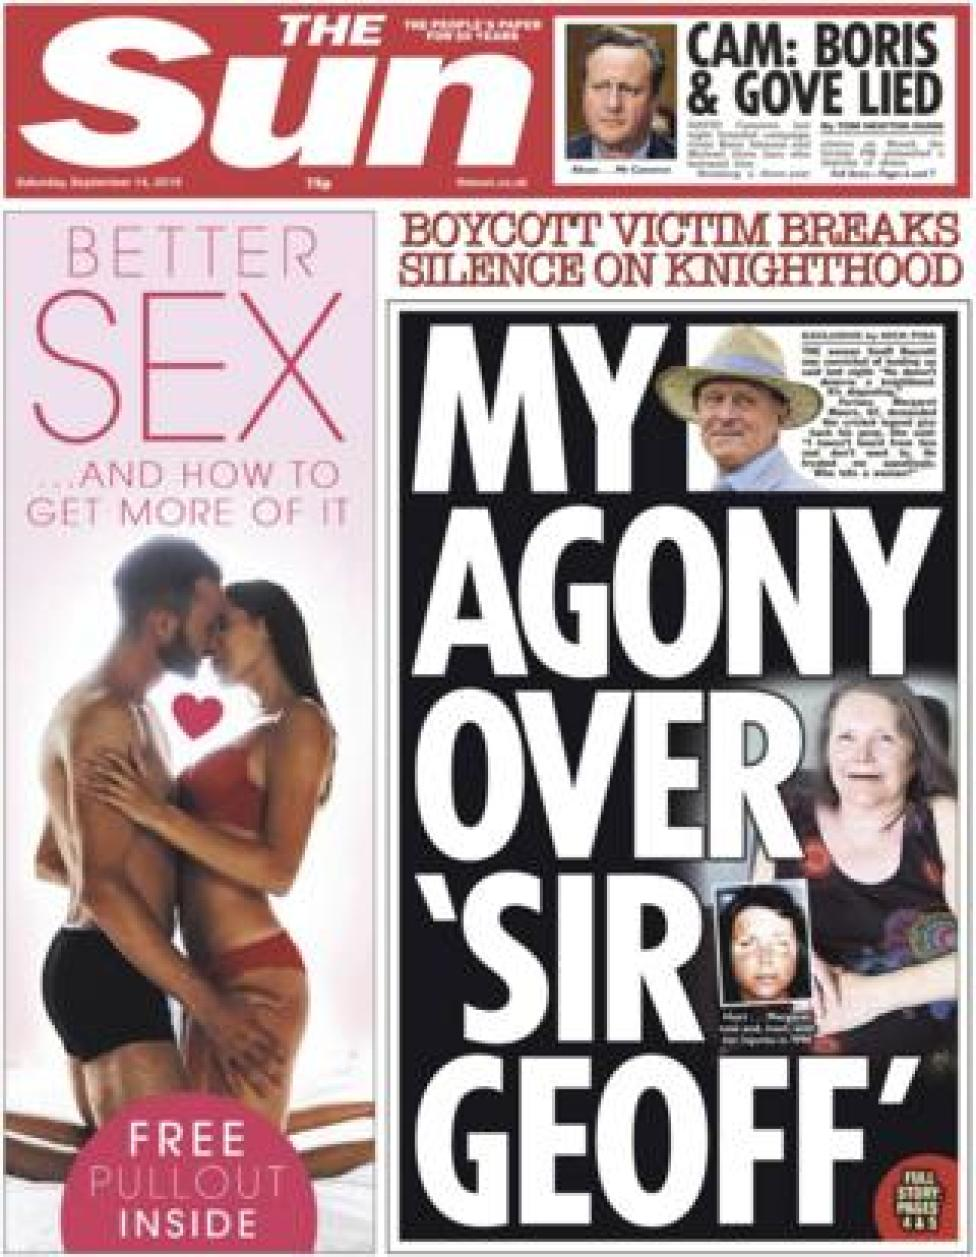 The front page of the Sun on 14 September 2019